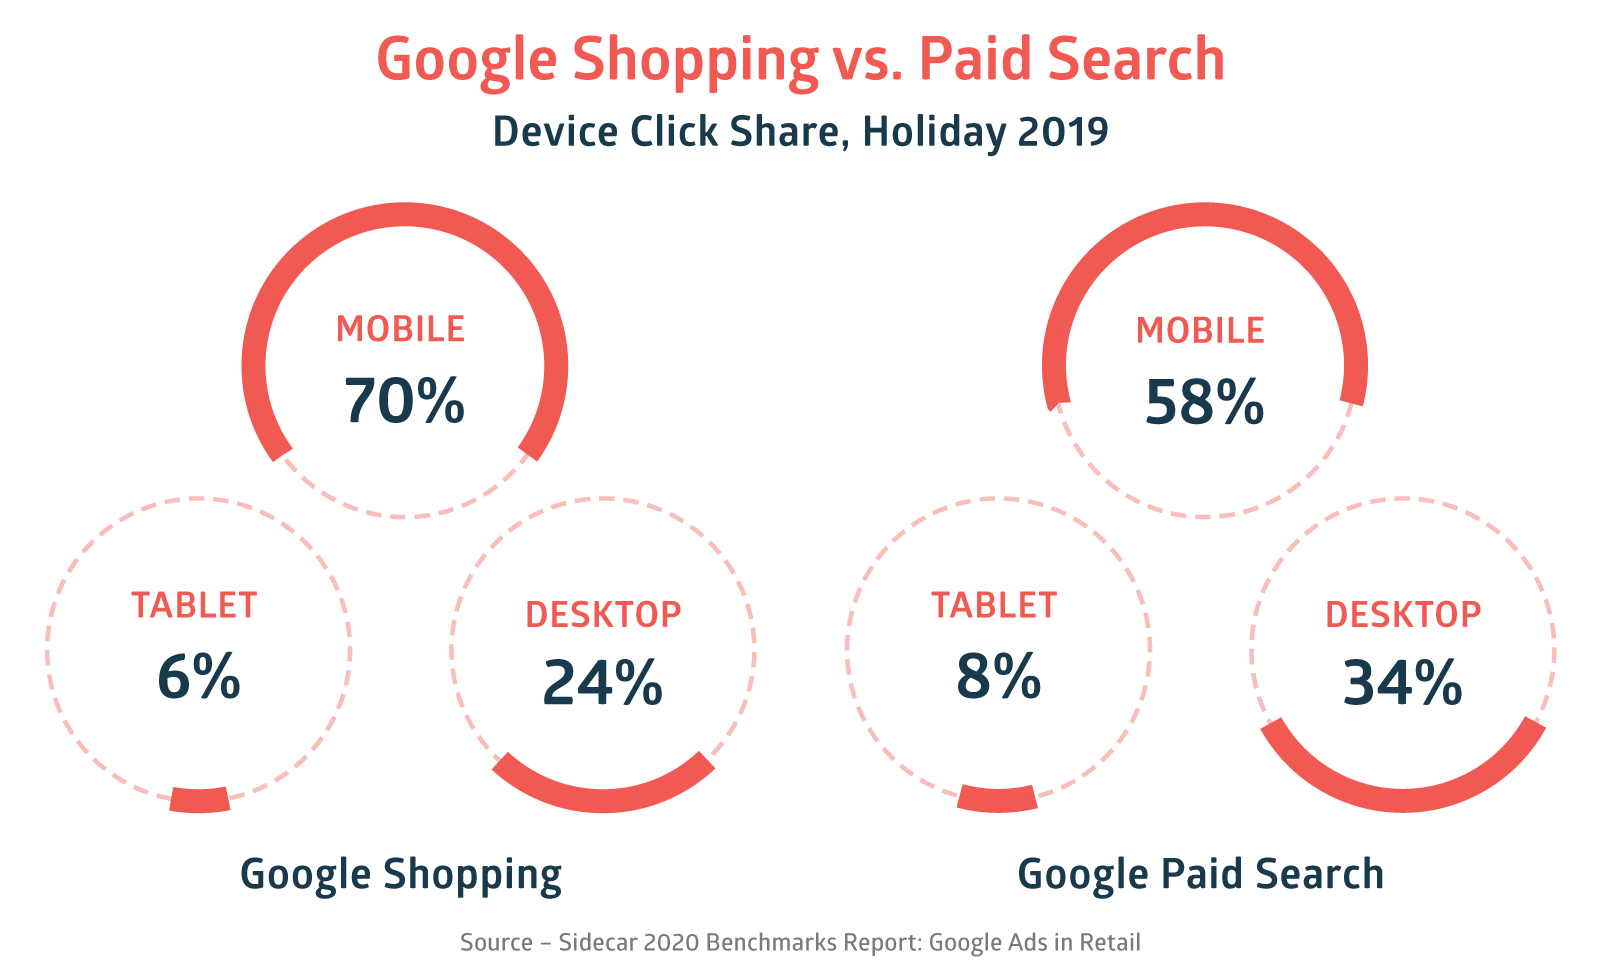 2020 Google Ads Benchmarks Device Click Share